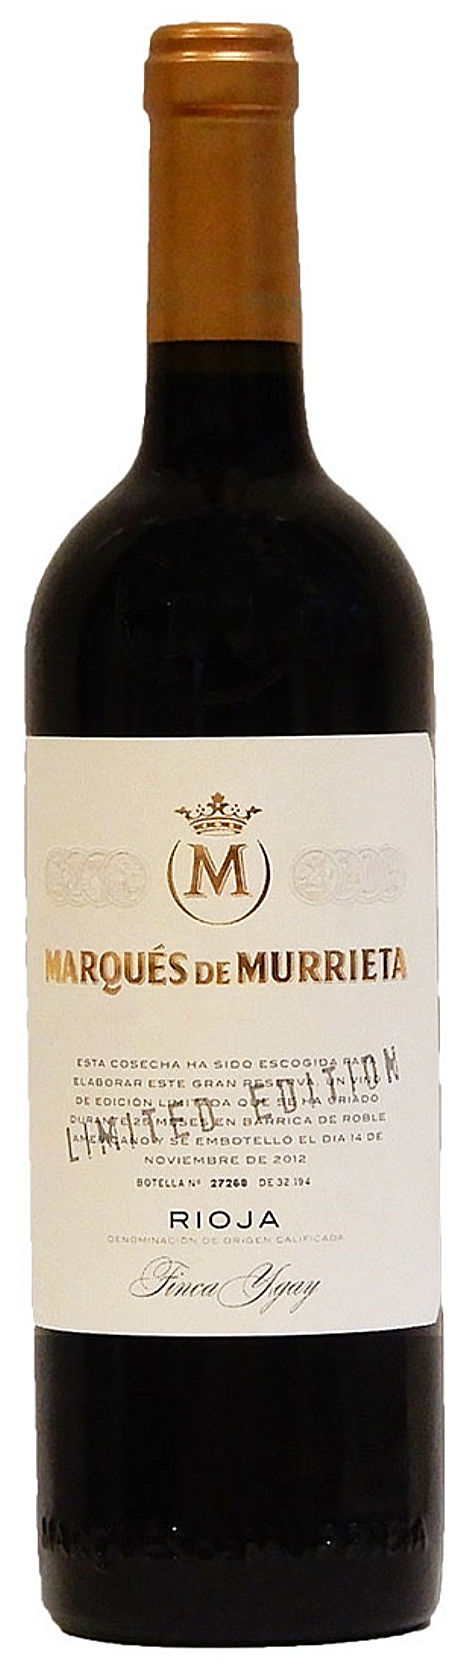 Marqués de Murrieta  Gran Reserva  Limited Edition